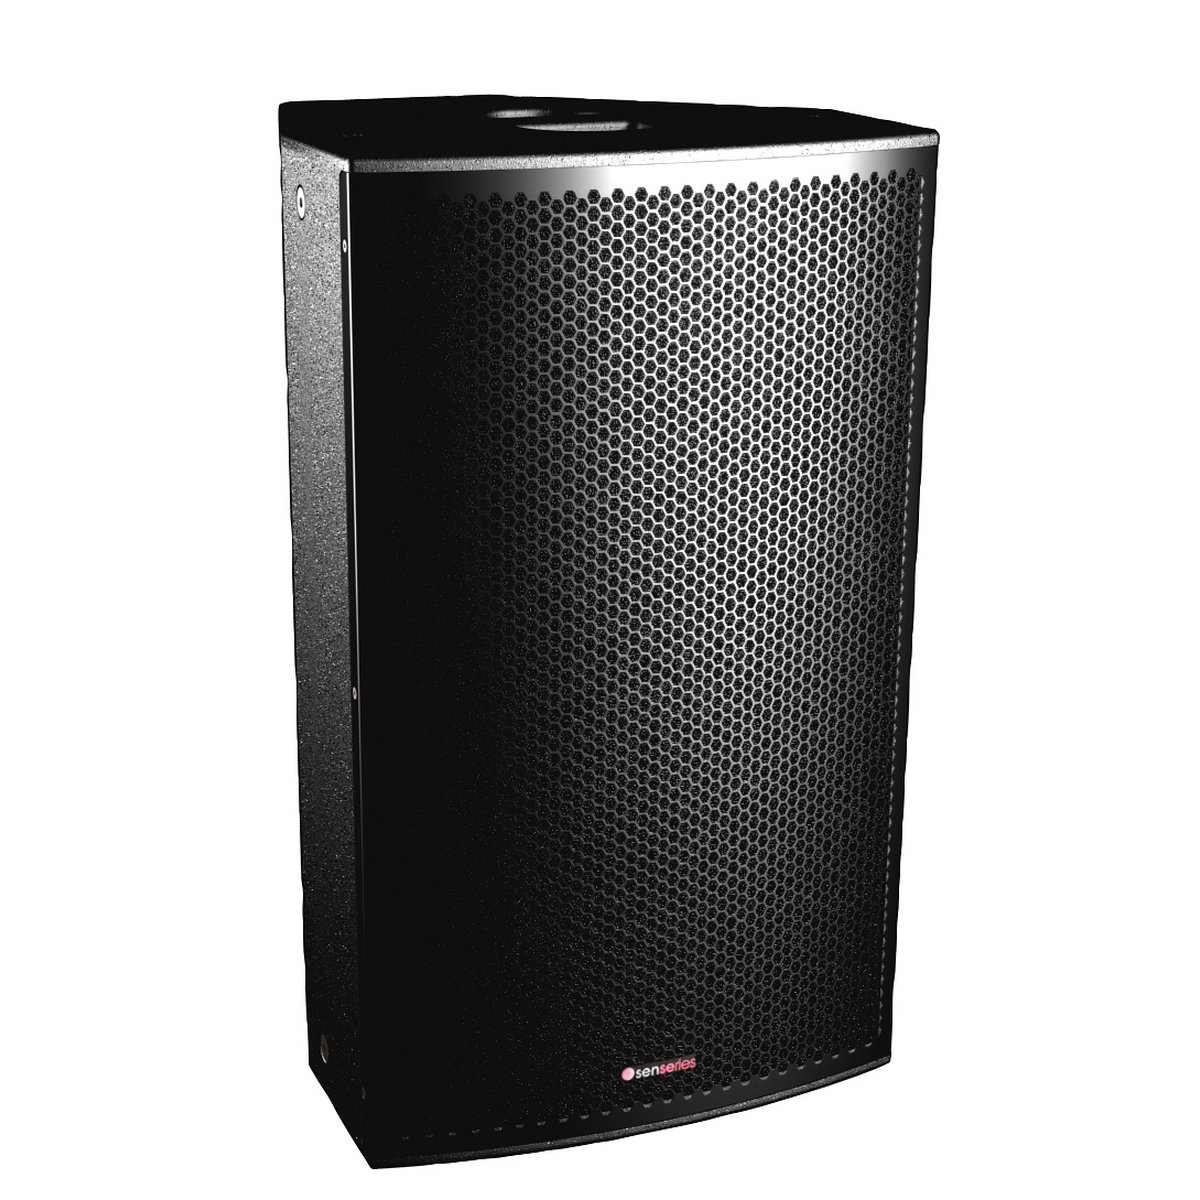 ADJ American Audio Sense 12 Speaker | 2-Way 12